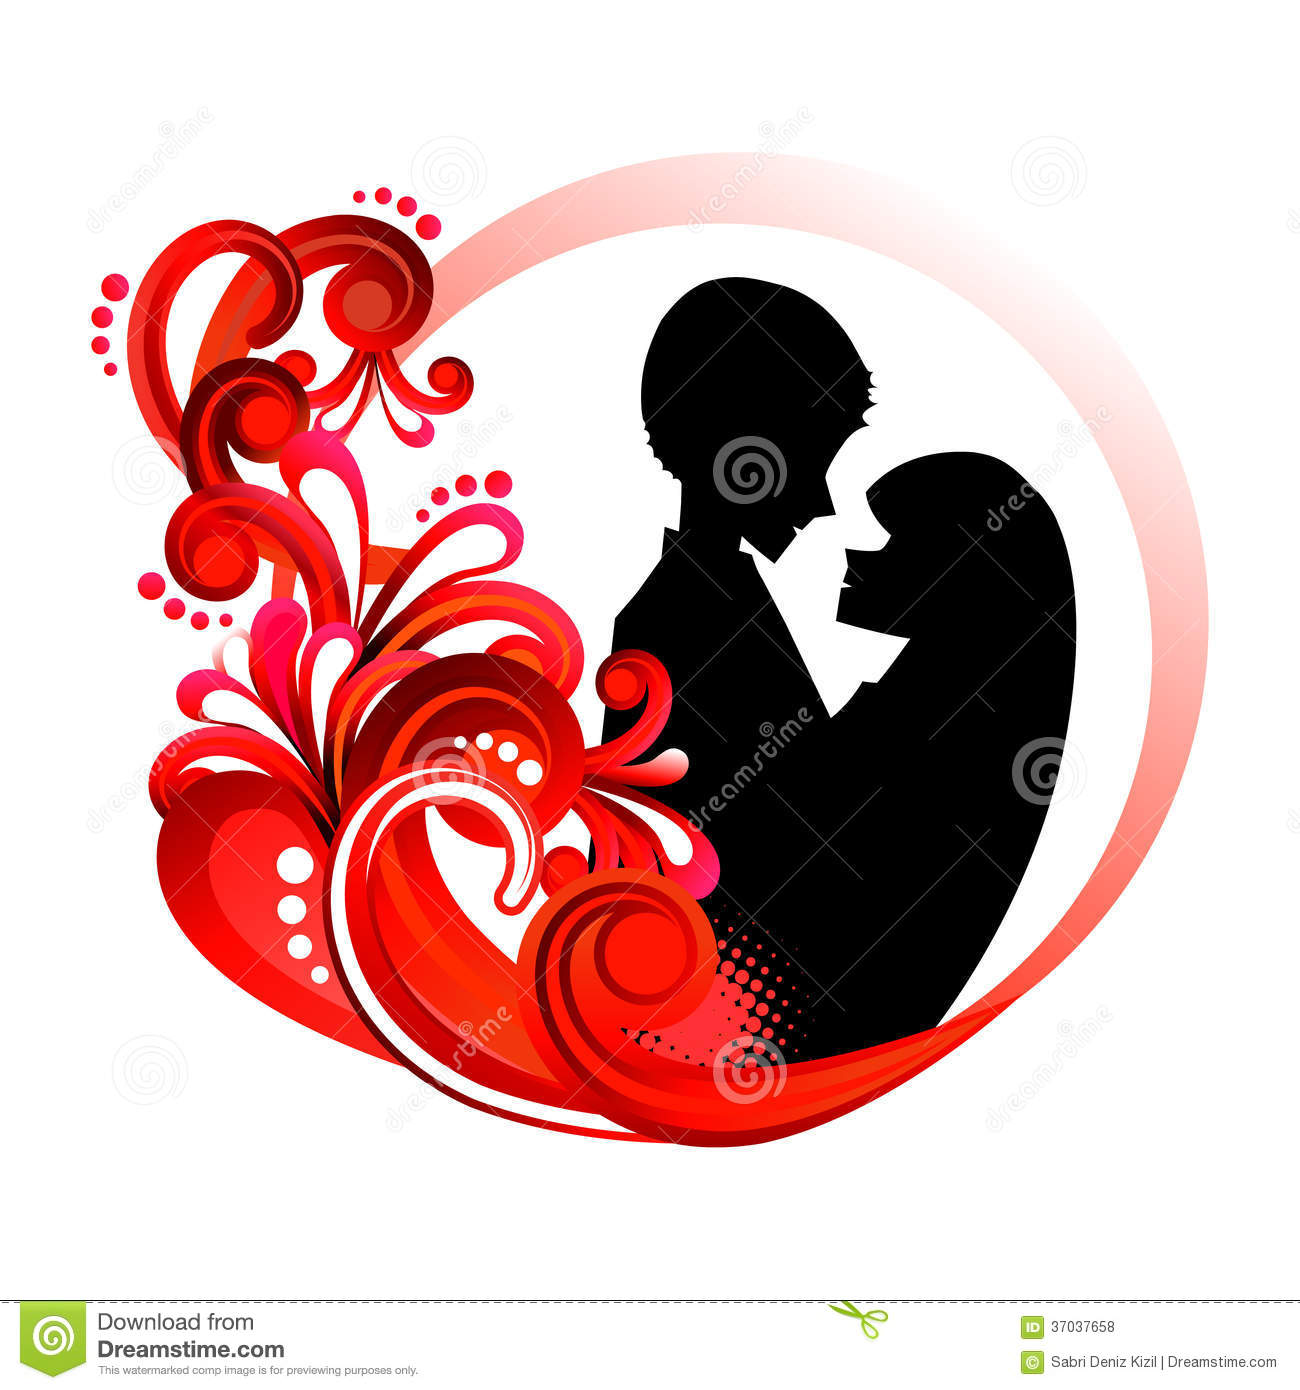 flirting signs of married women images clip art free download